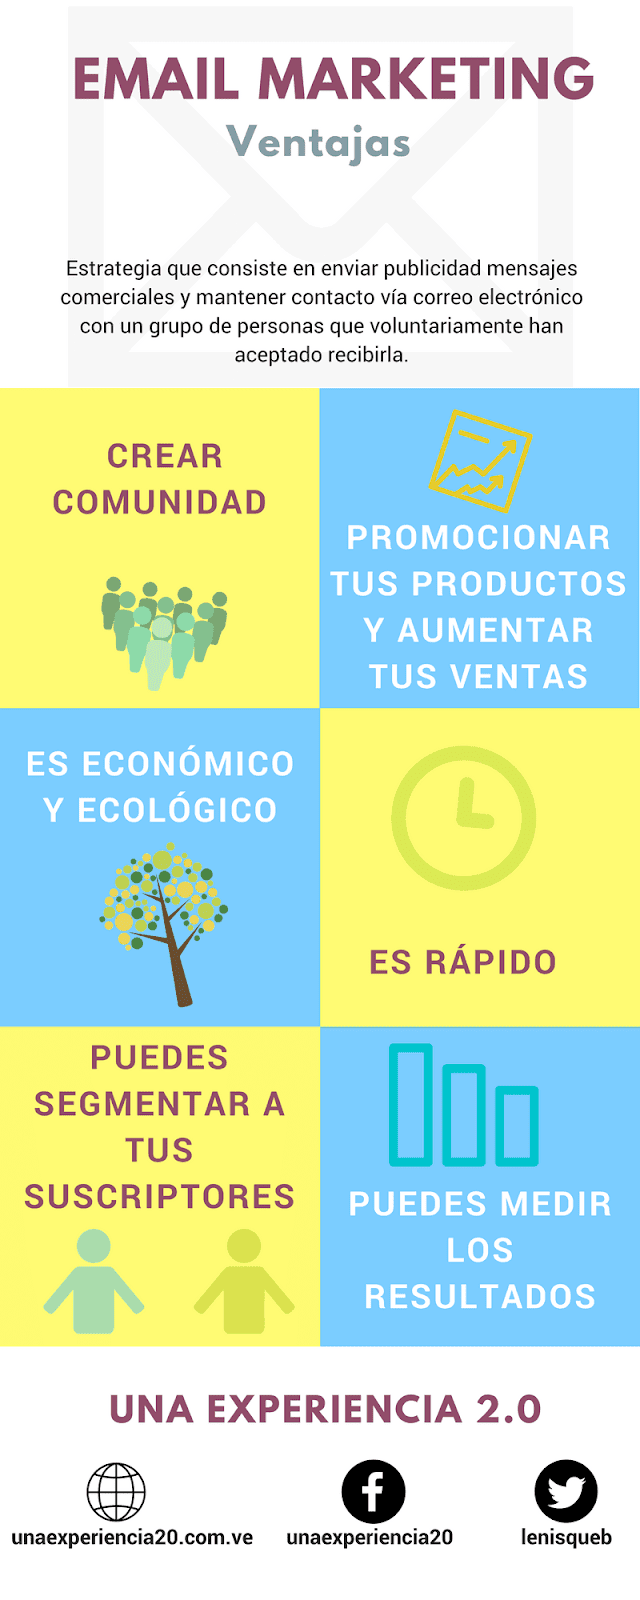 Infografia-email-marketing-ventajas